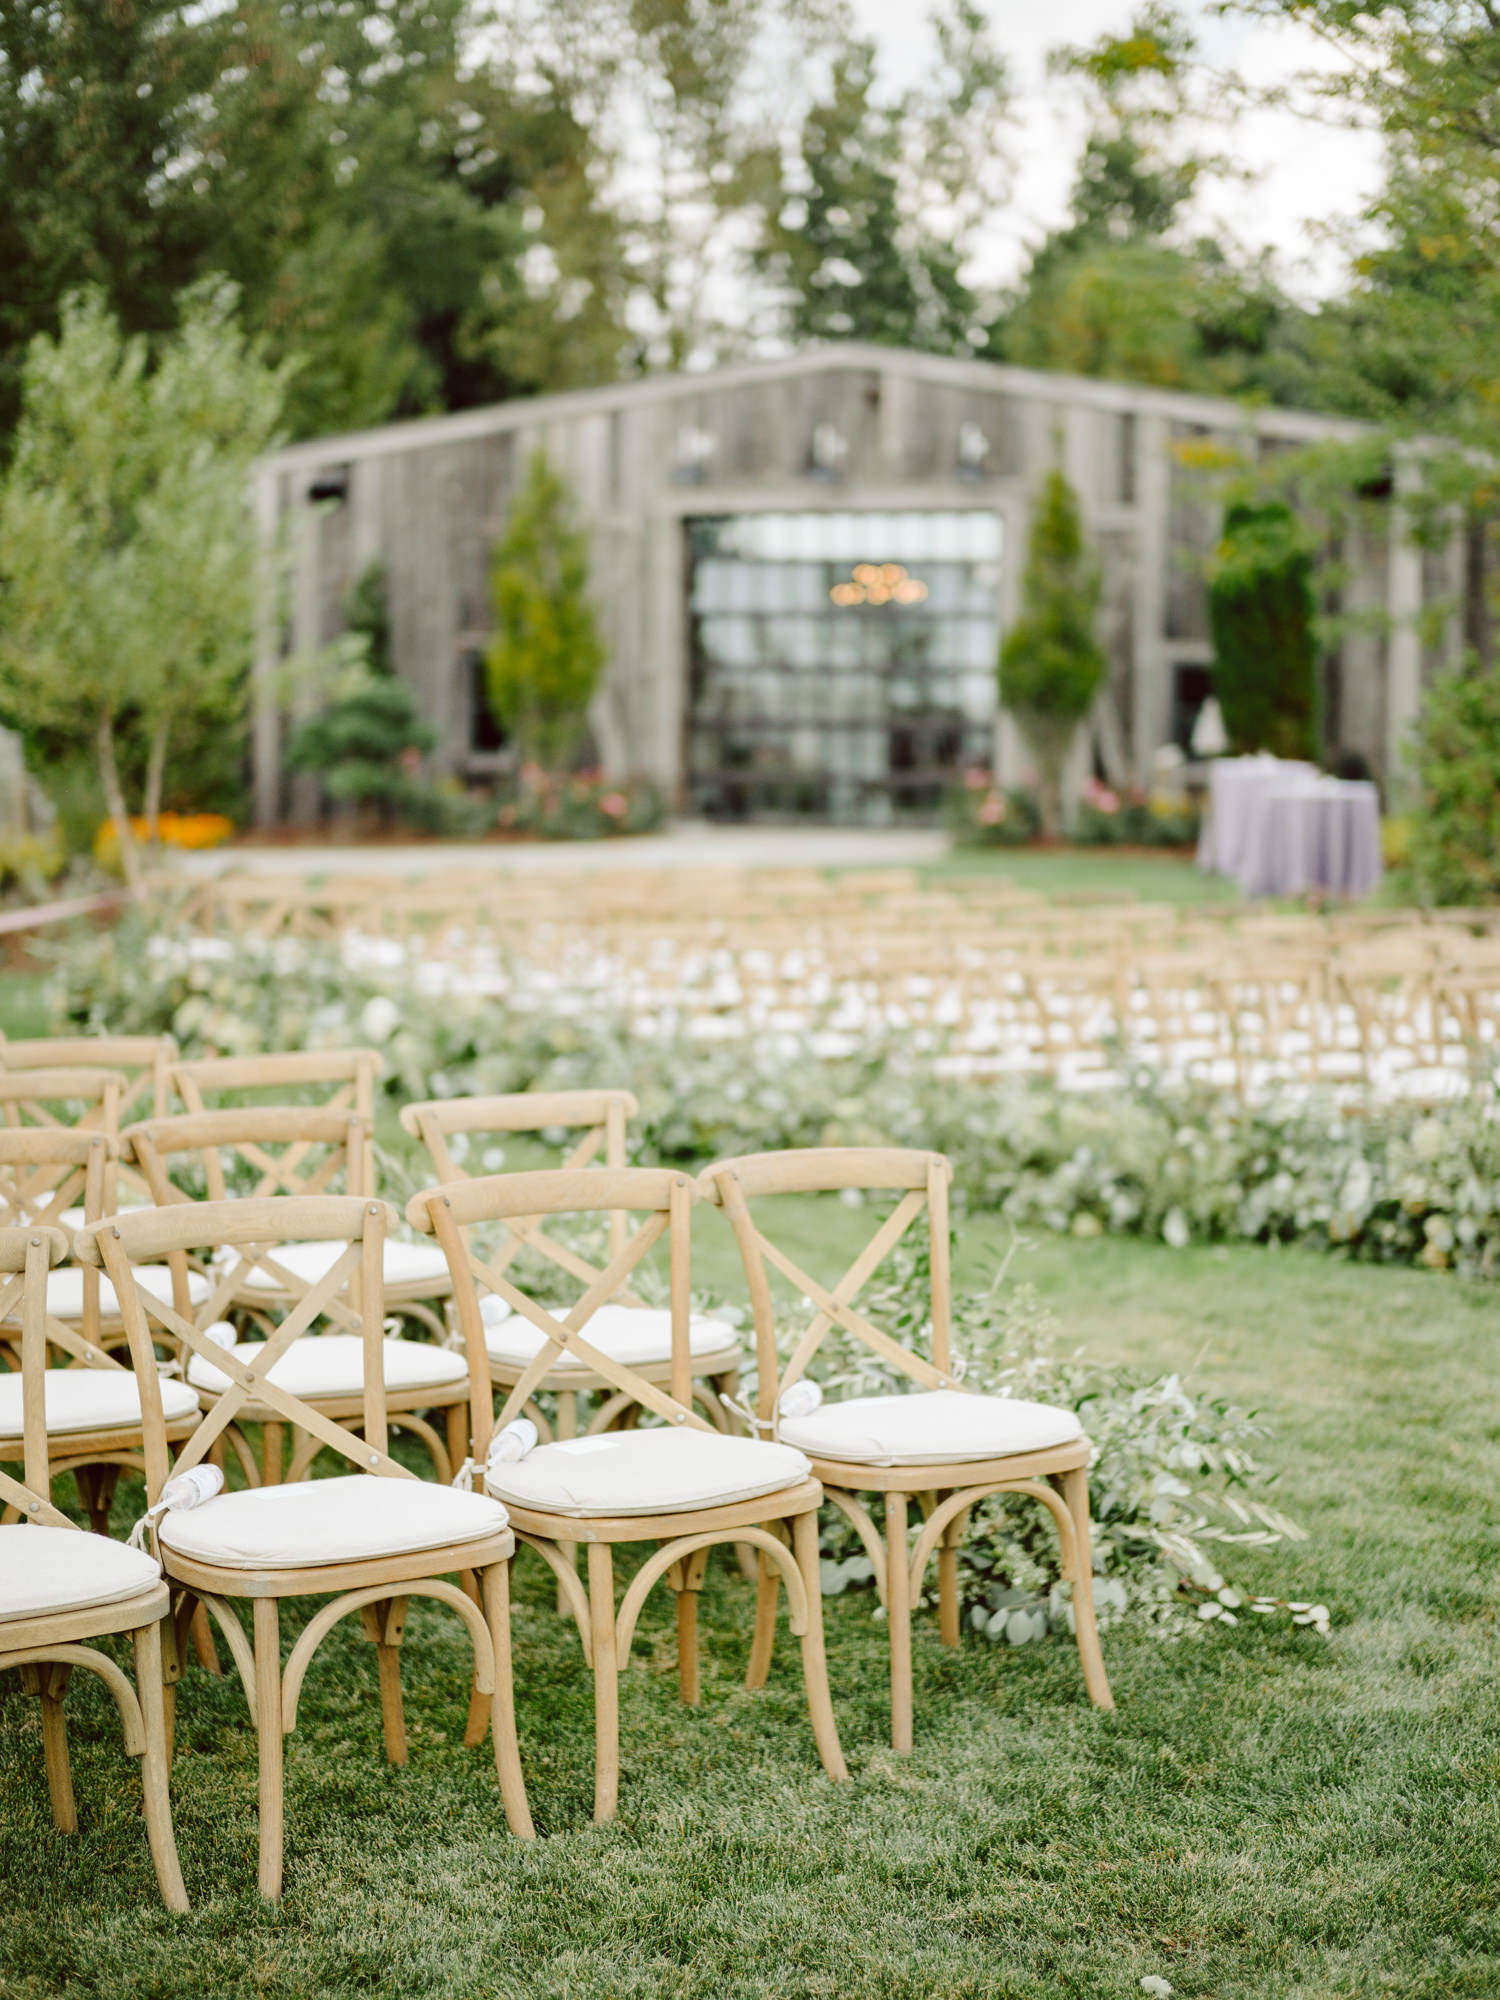 Outdoor reception decor with wood cross back chairs - photo by Benj Haisch